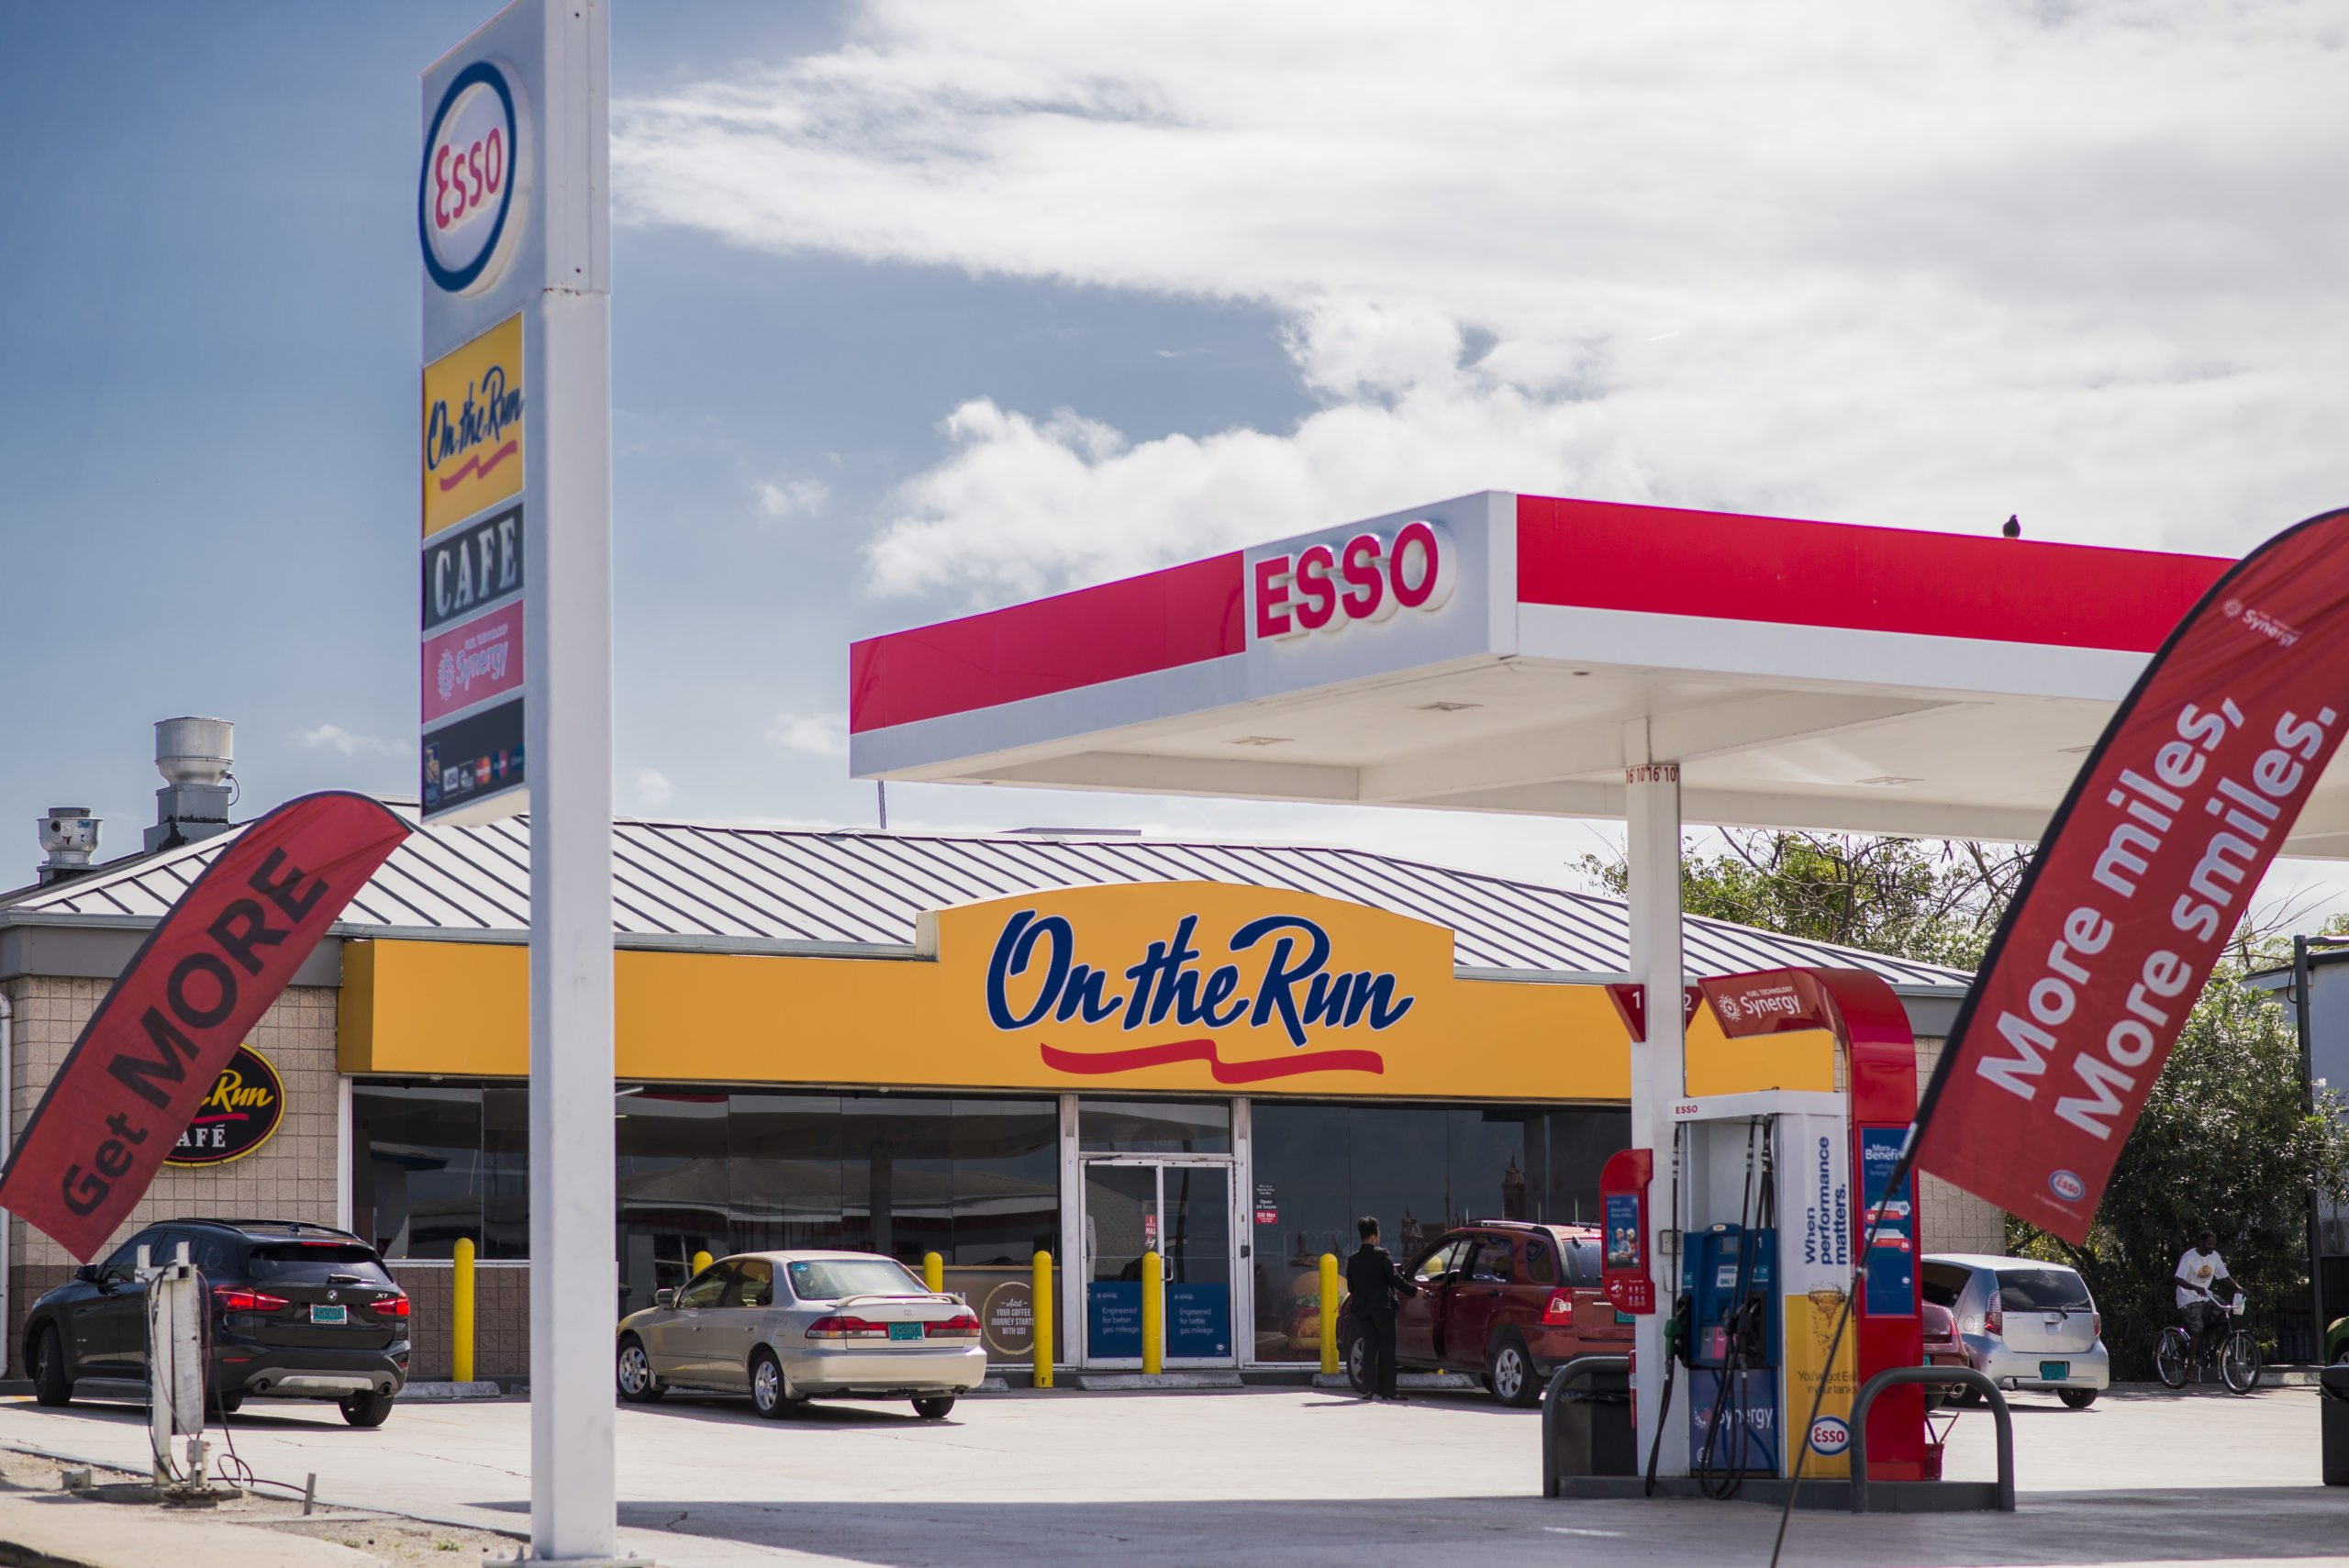 Gas station times extended to 5pm, more businesses exempted